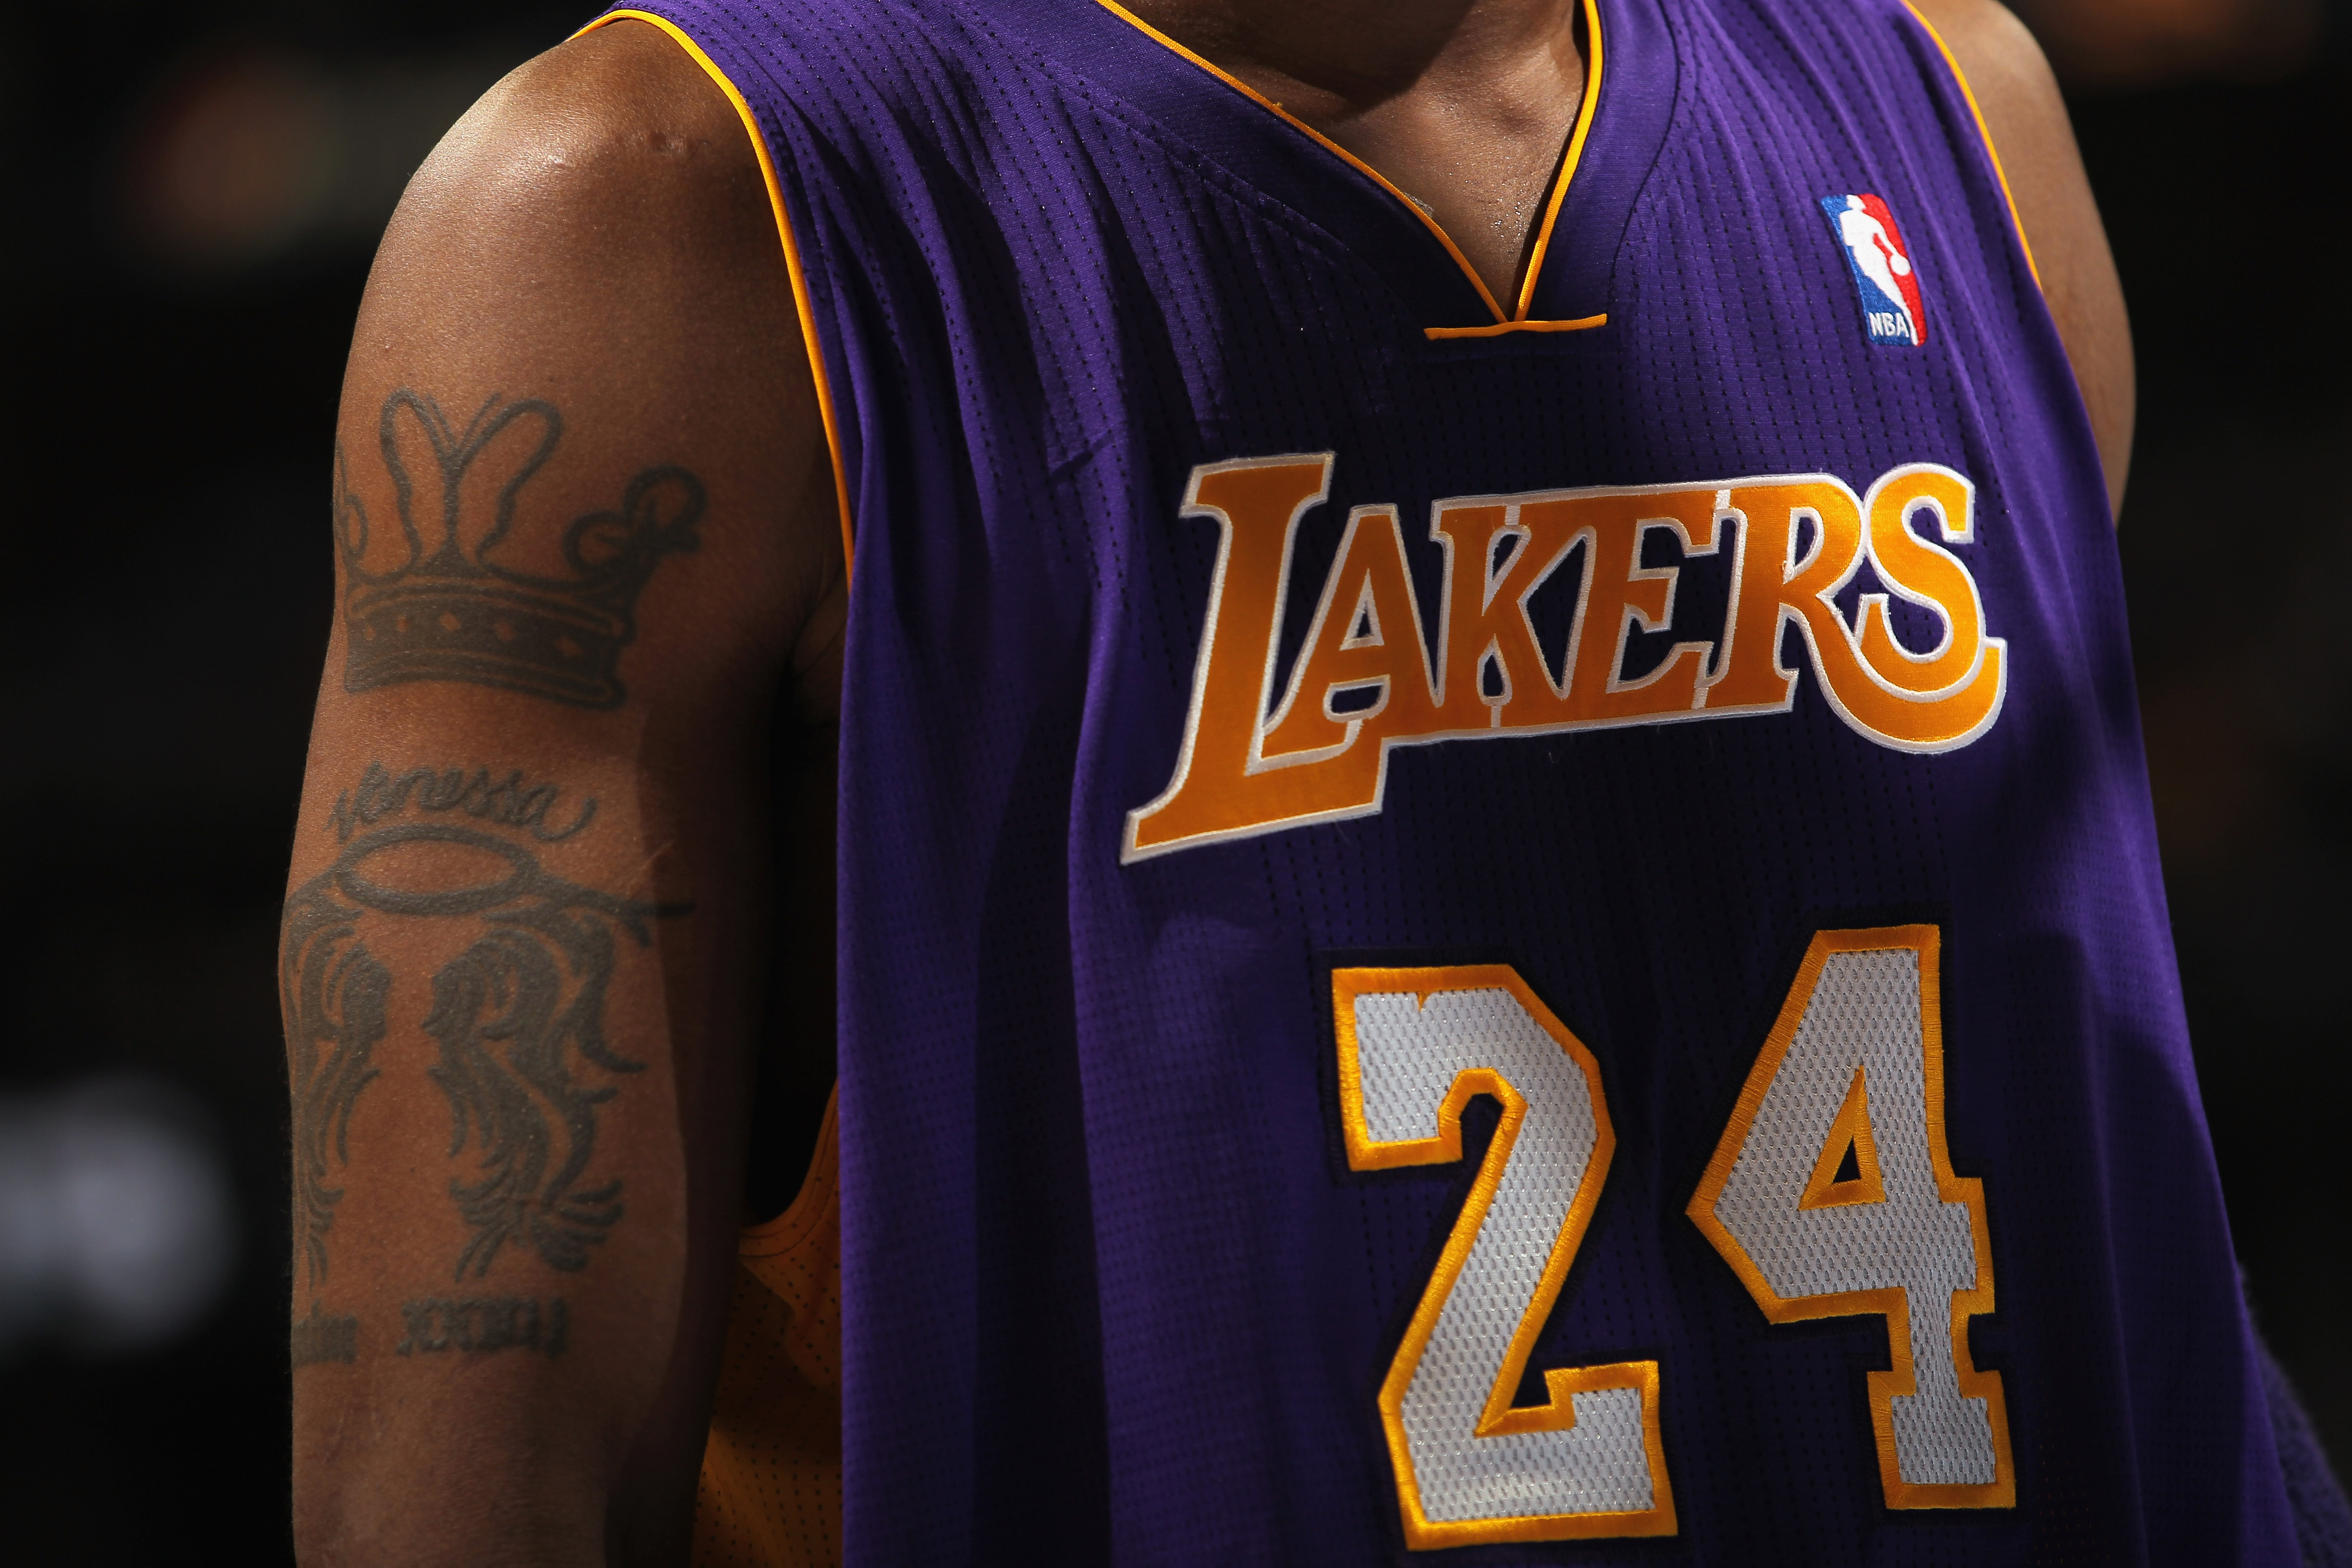 DENVER - NOVEMBER 11:  A detail of the jersey and tattoo of Kobe Bryant #24 of the Los Angeles Lakers as they face the Denver Nuggets at the Pepsi Center on November 11, 2010 in Denver, Colorado. The Nuggets defeated the Lakers 118-112.  NOTE TO USER: Use